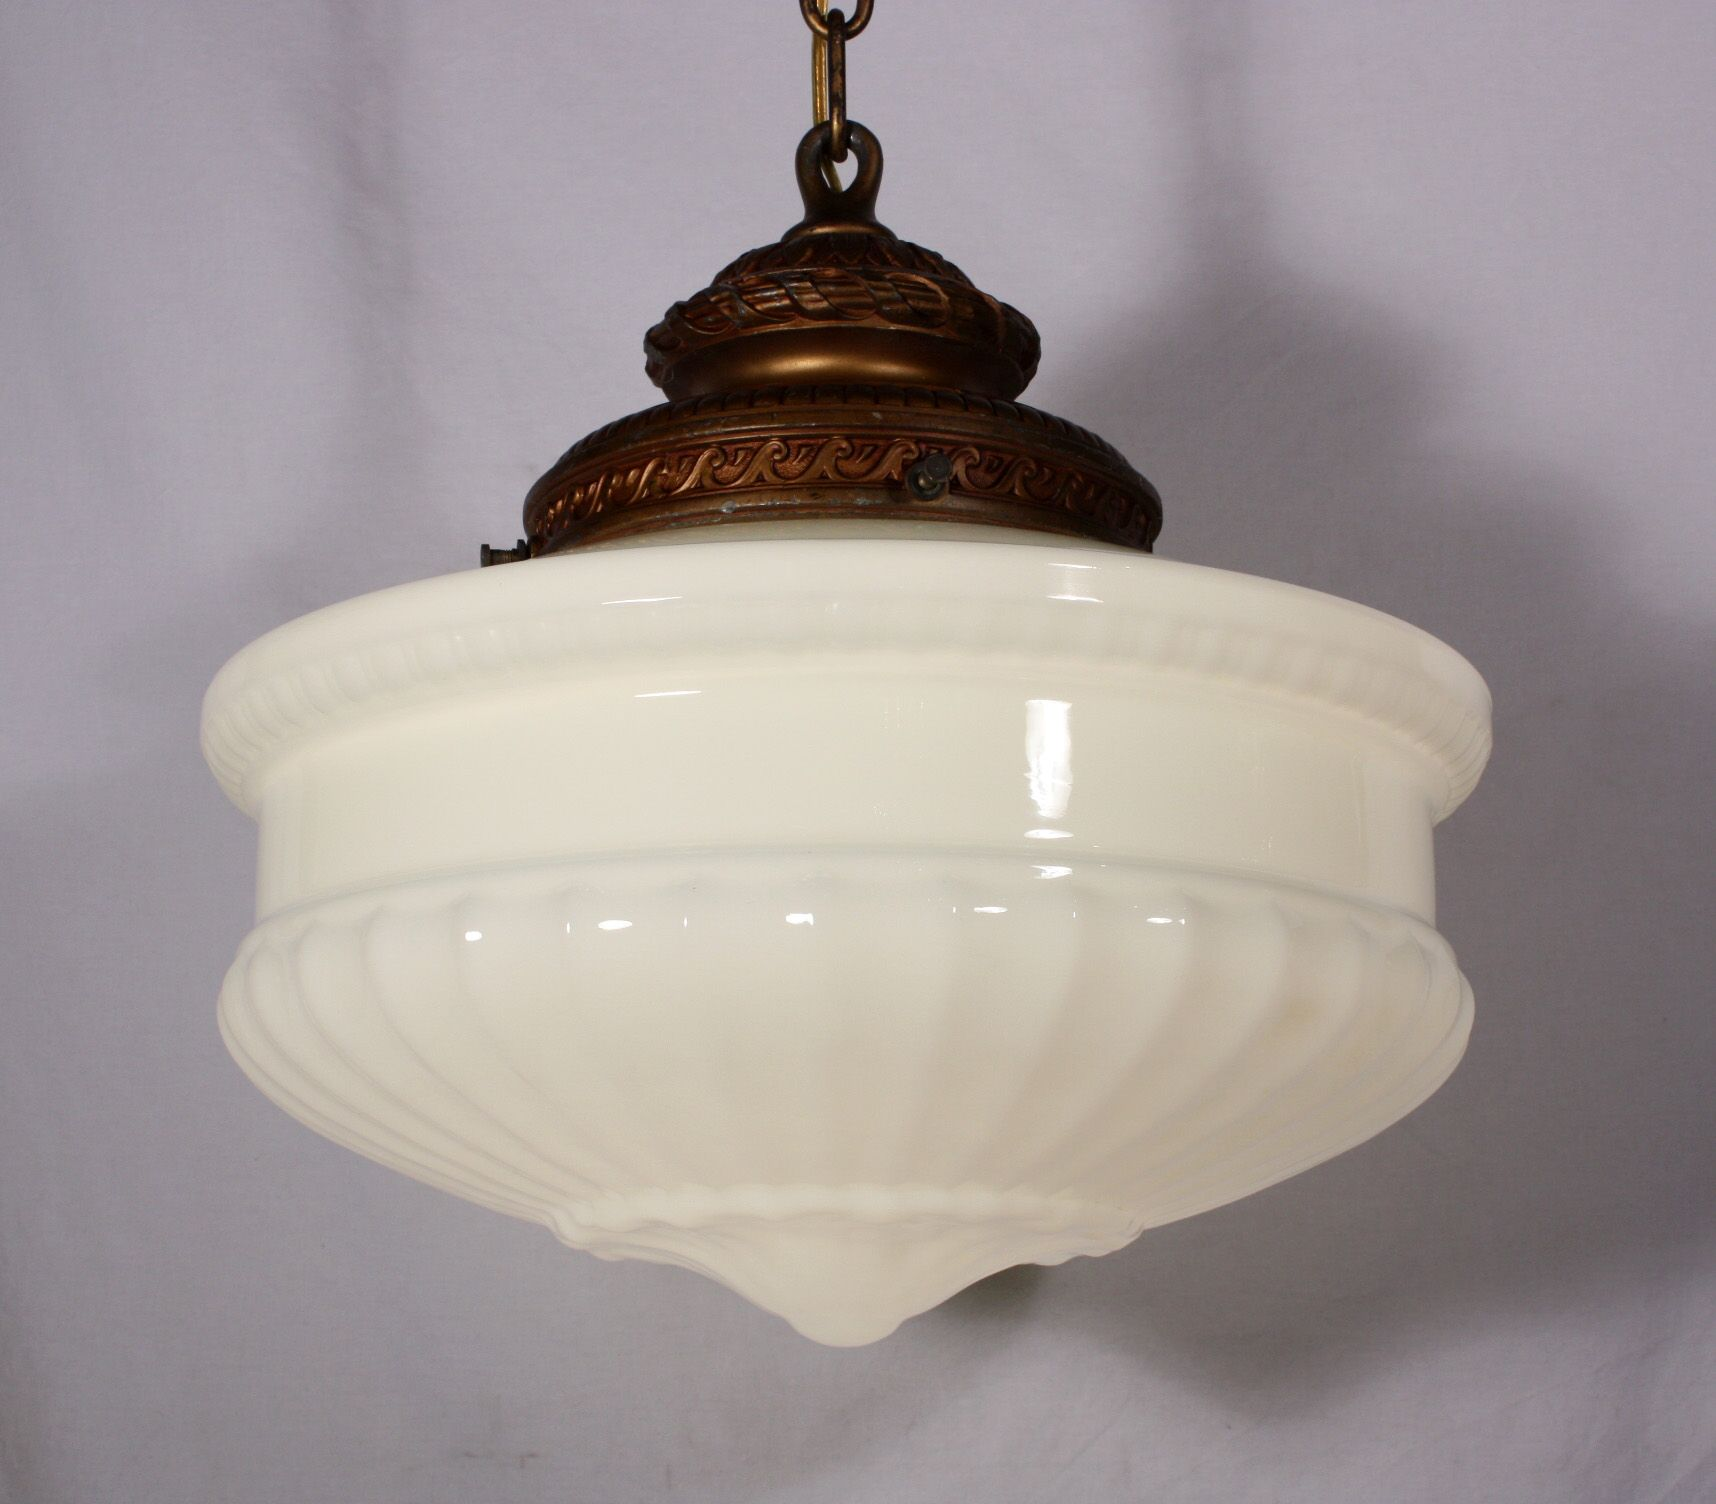 Kitchen Pendant Lighting Glass Shades Large Antique Pendant Light Fixture With Original Milk